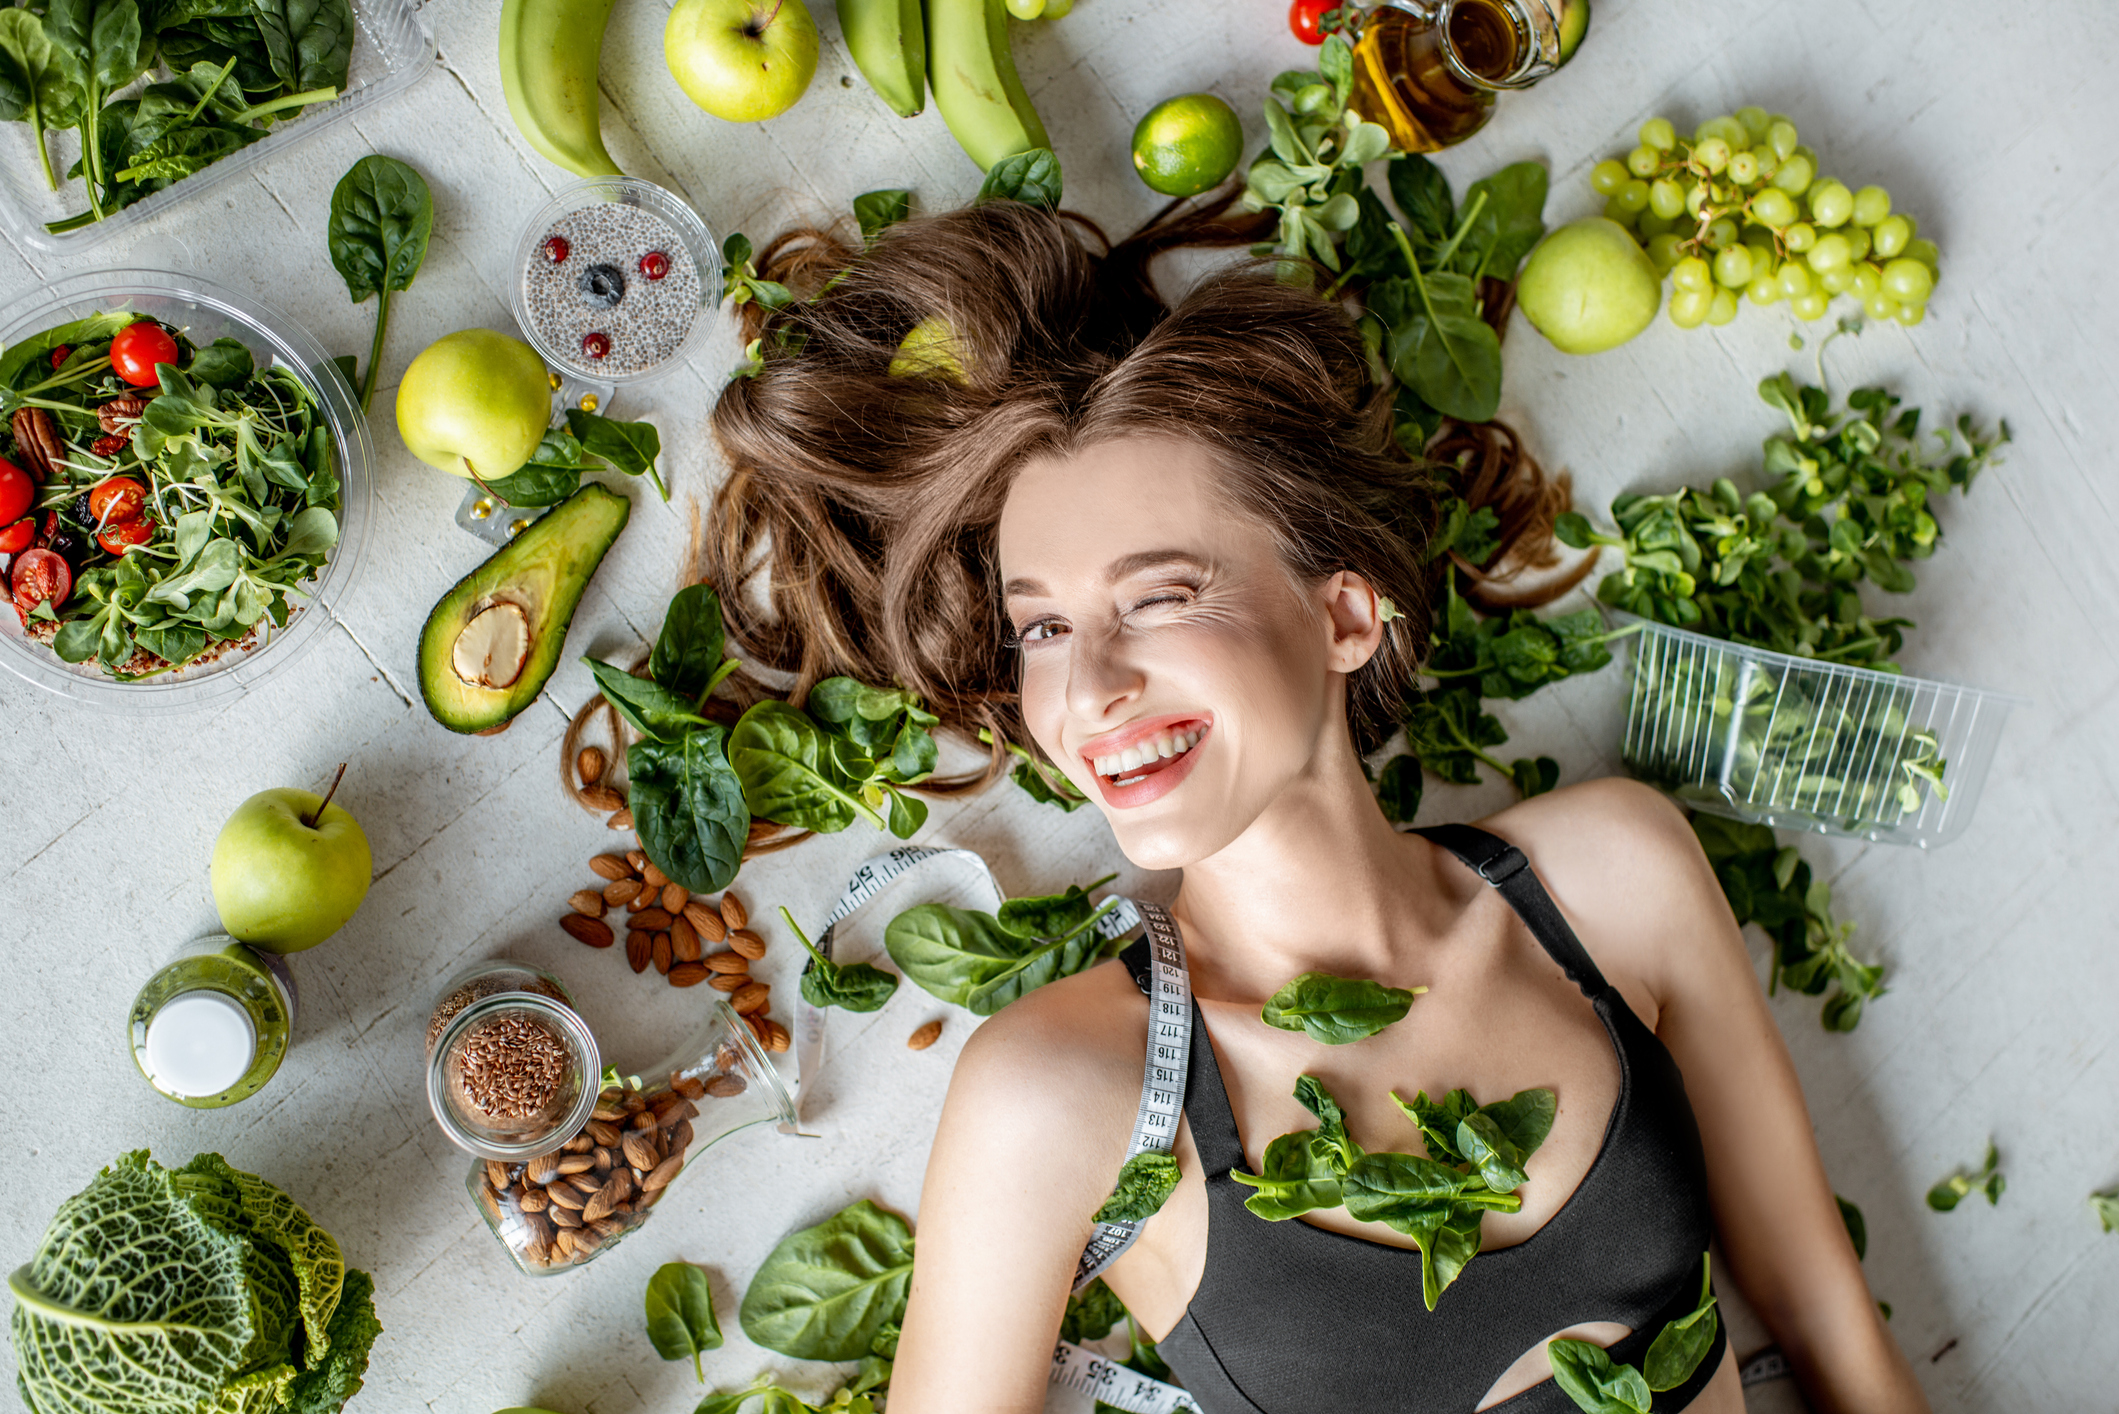 Want to be less stressed? Eat your fruits and veggies